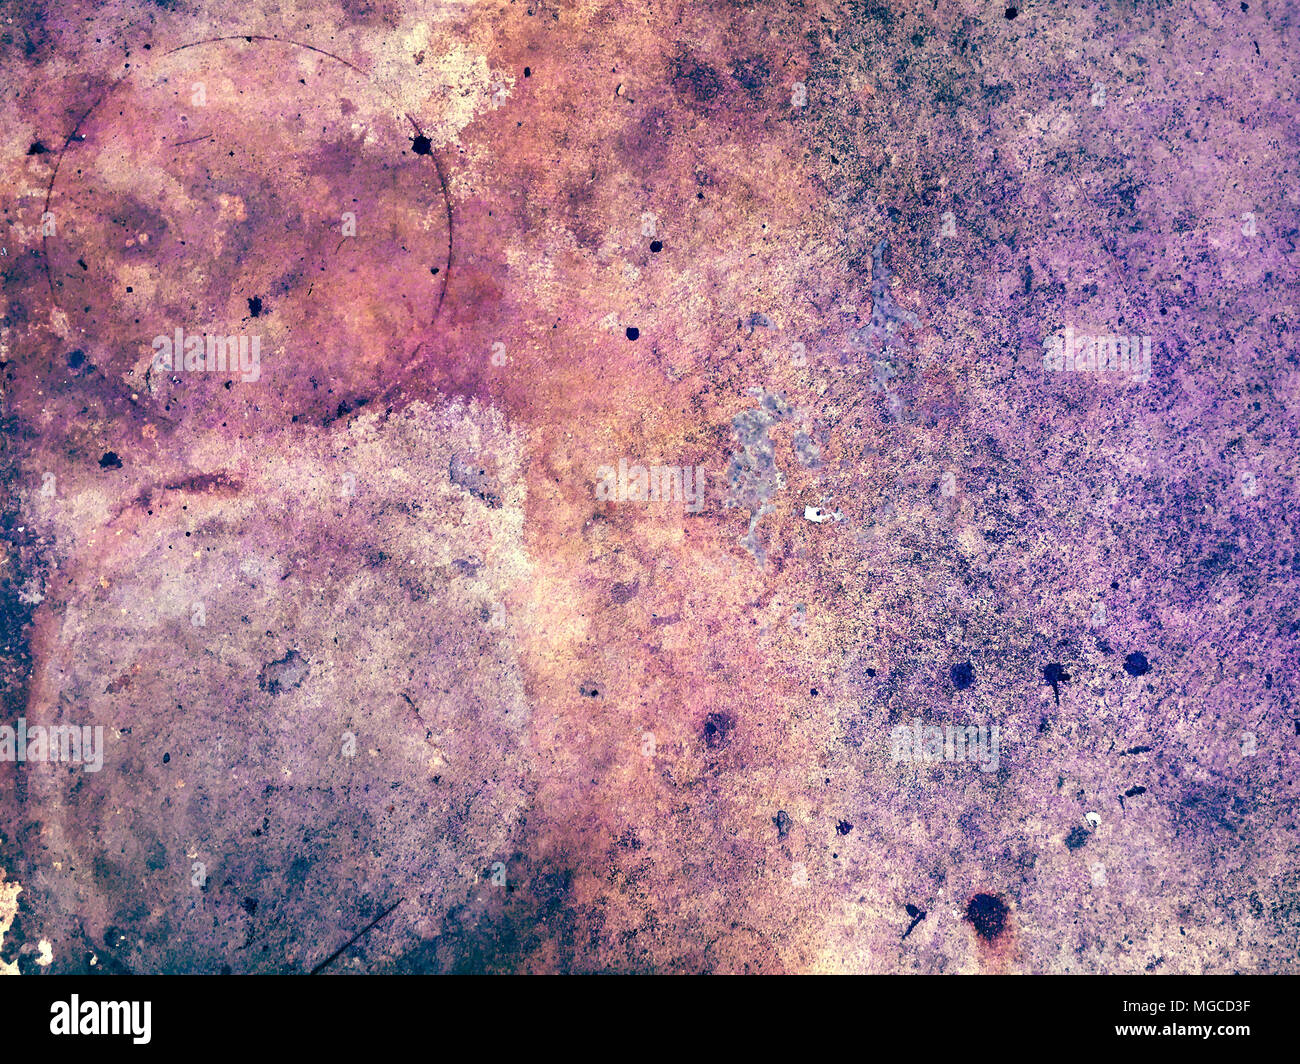 Cement surface grunge texture, good for background design slide presentation. - Stock Image